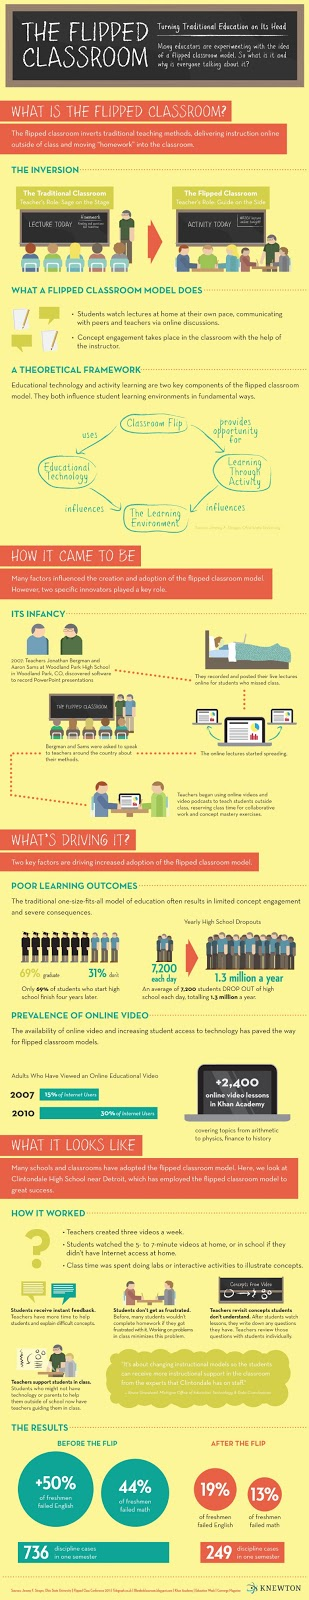 Flipped Classroom infographic.  Source http://knewton.marketing.s3.amazonaws.com/images/infographics/flipped-classroom.jpg